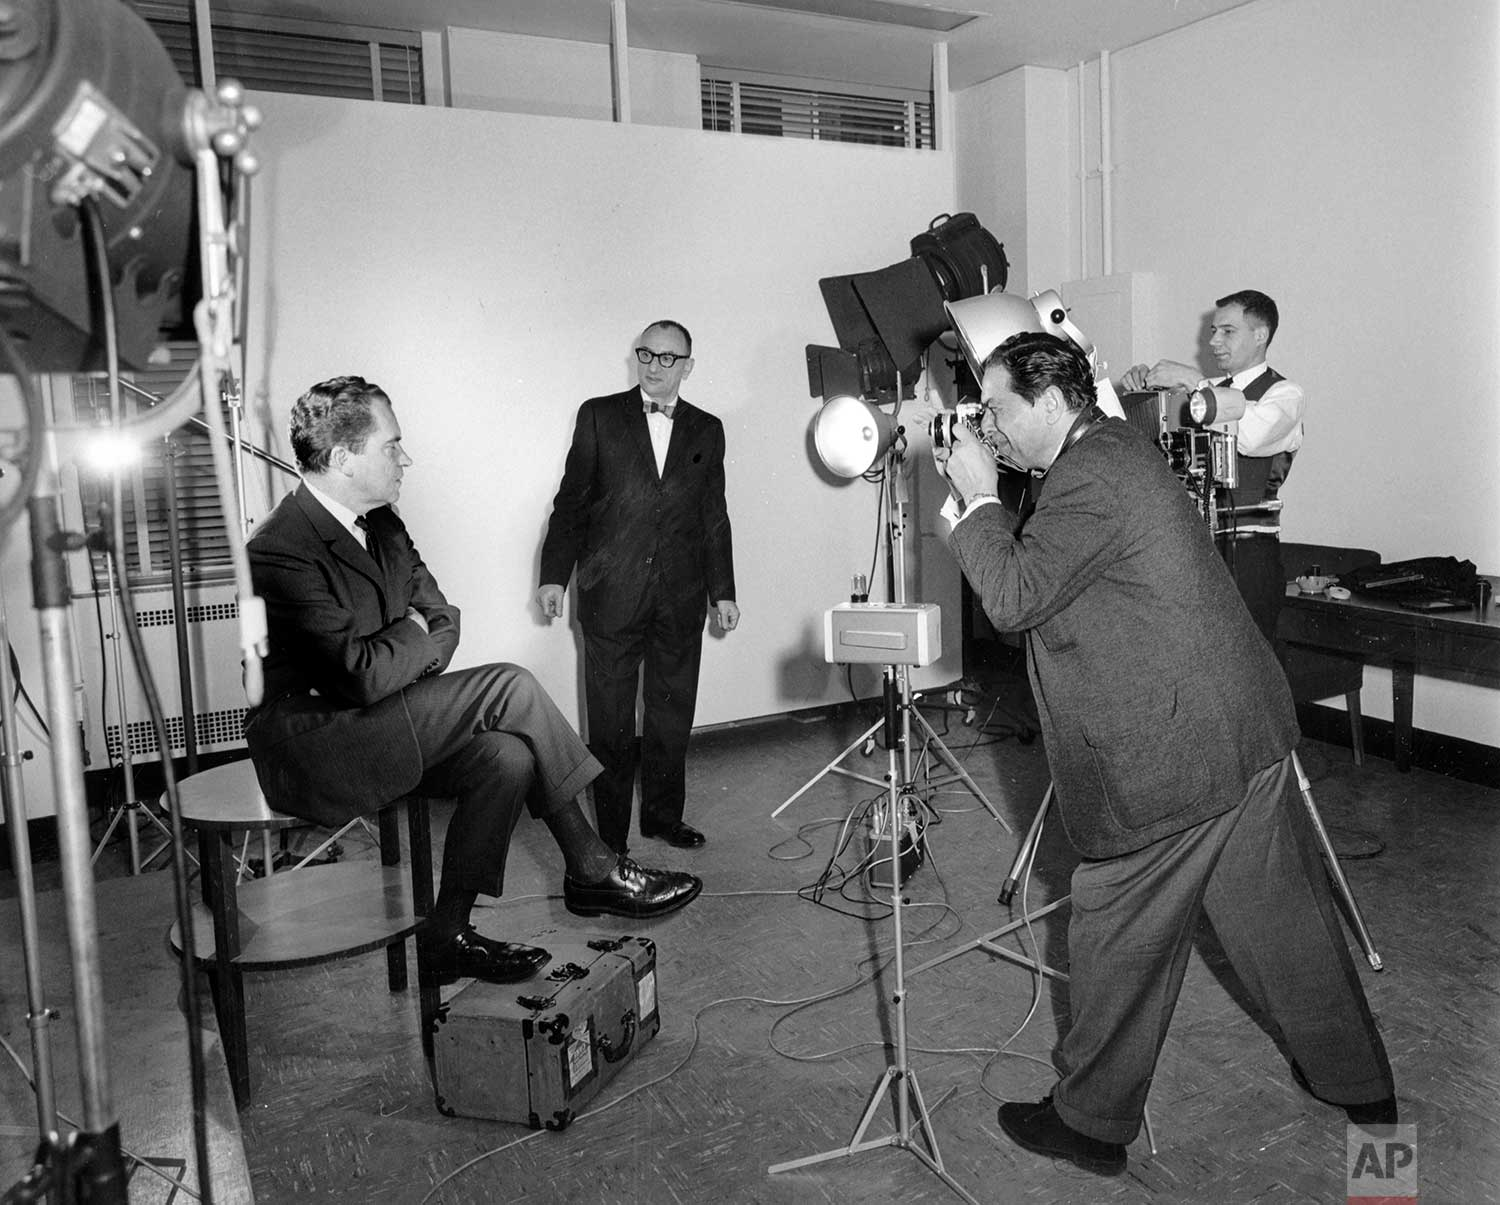 Former Vice President Richard Nixon, left, sits for a portrait at Associated Press headquarters in New York on his 51st birthday, Jan. 9, 1964. AP chief photographer Murray Becker, center, directs the shoot with photographers Tony Camerano, foreground, and Ed (Eddie) Adams, right. (AP Photo/Corporate Archives)